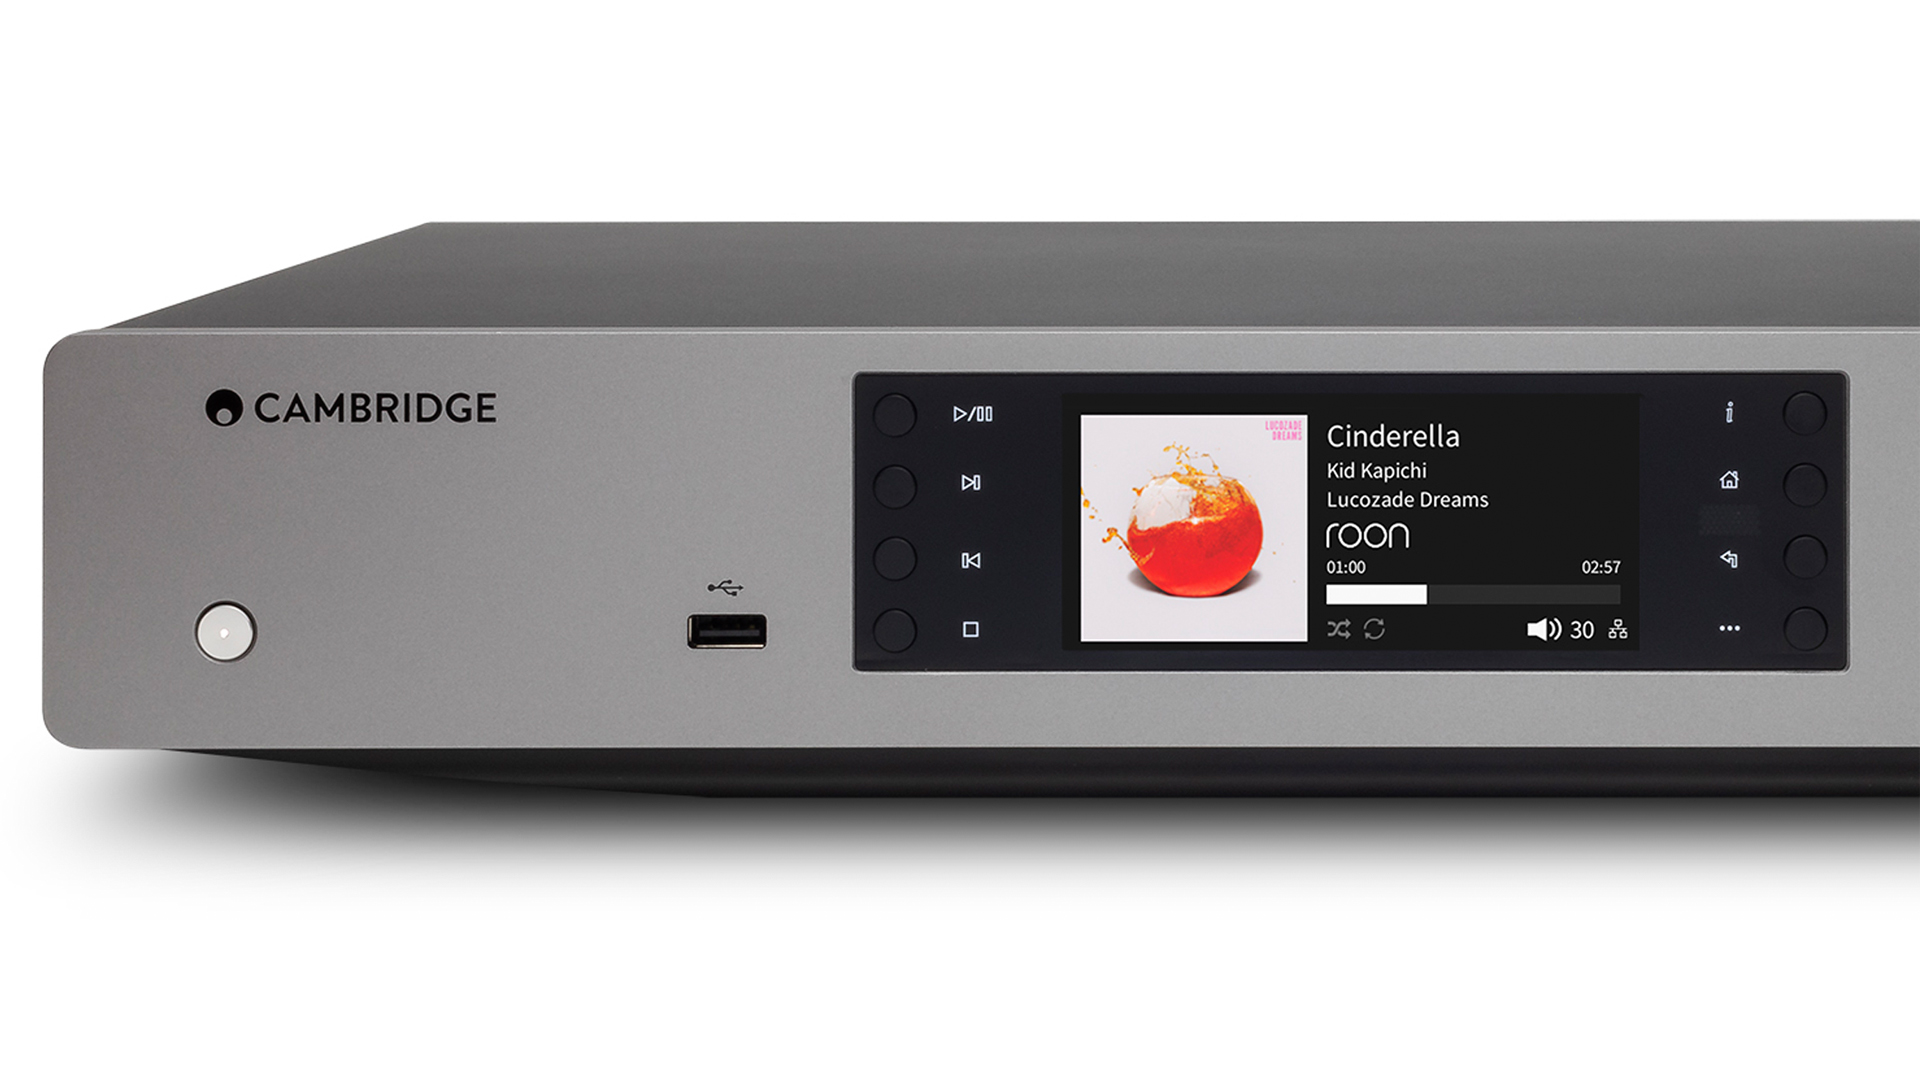 Cambridge's CXN (V2) receives music from Roon (Image: Cambridge Audio)